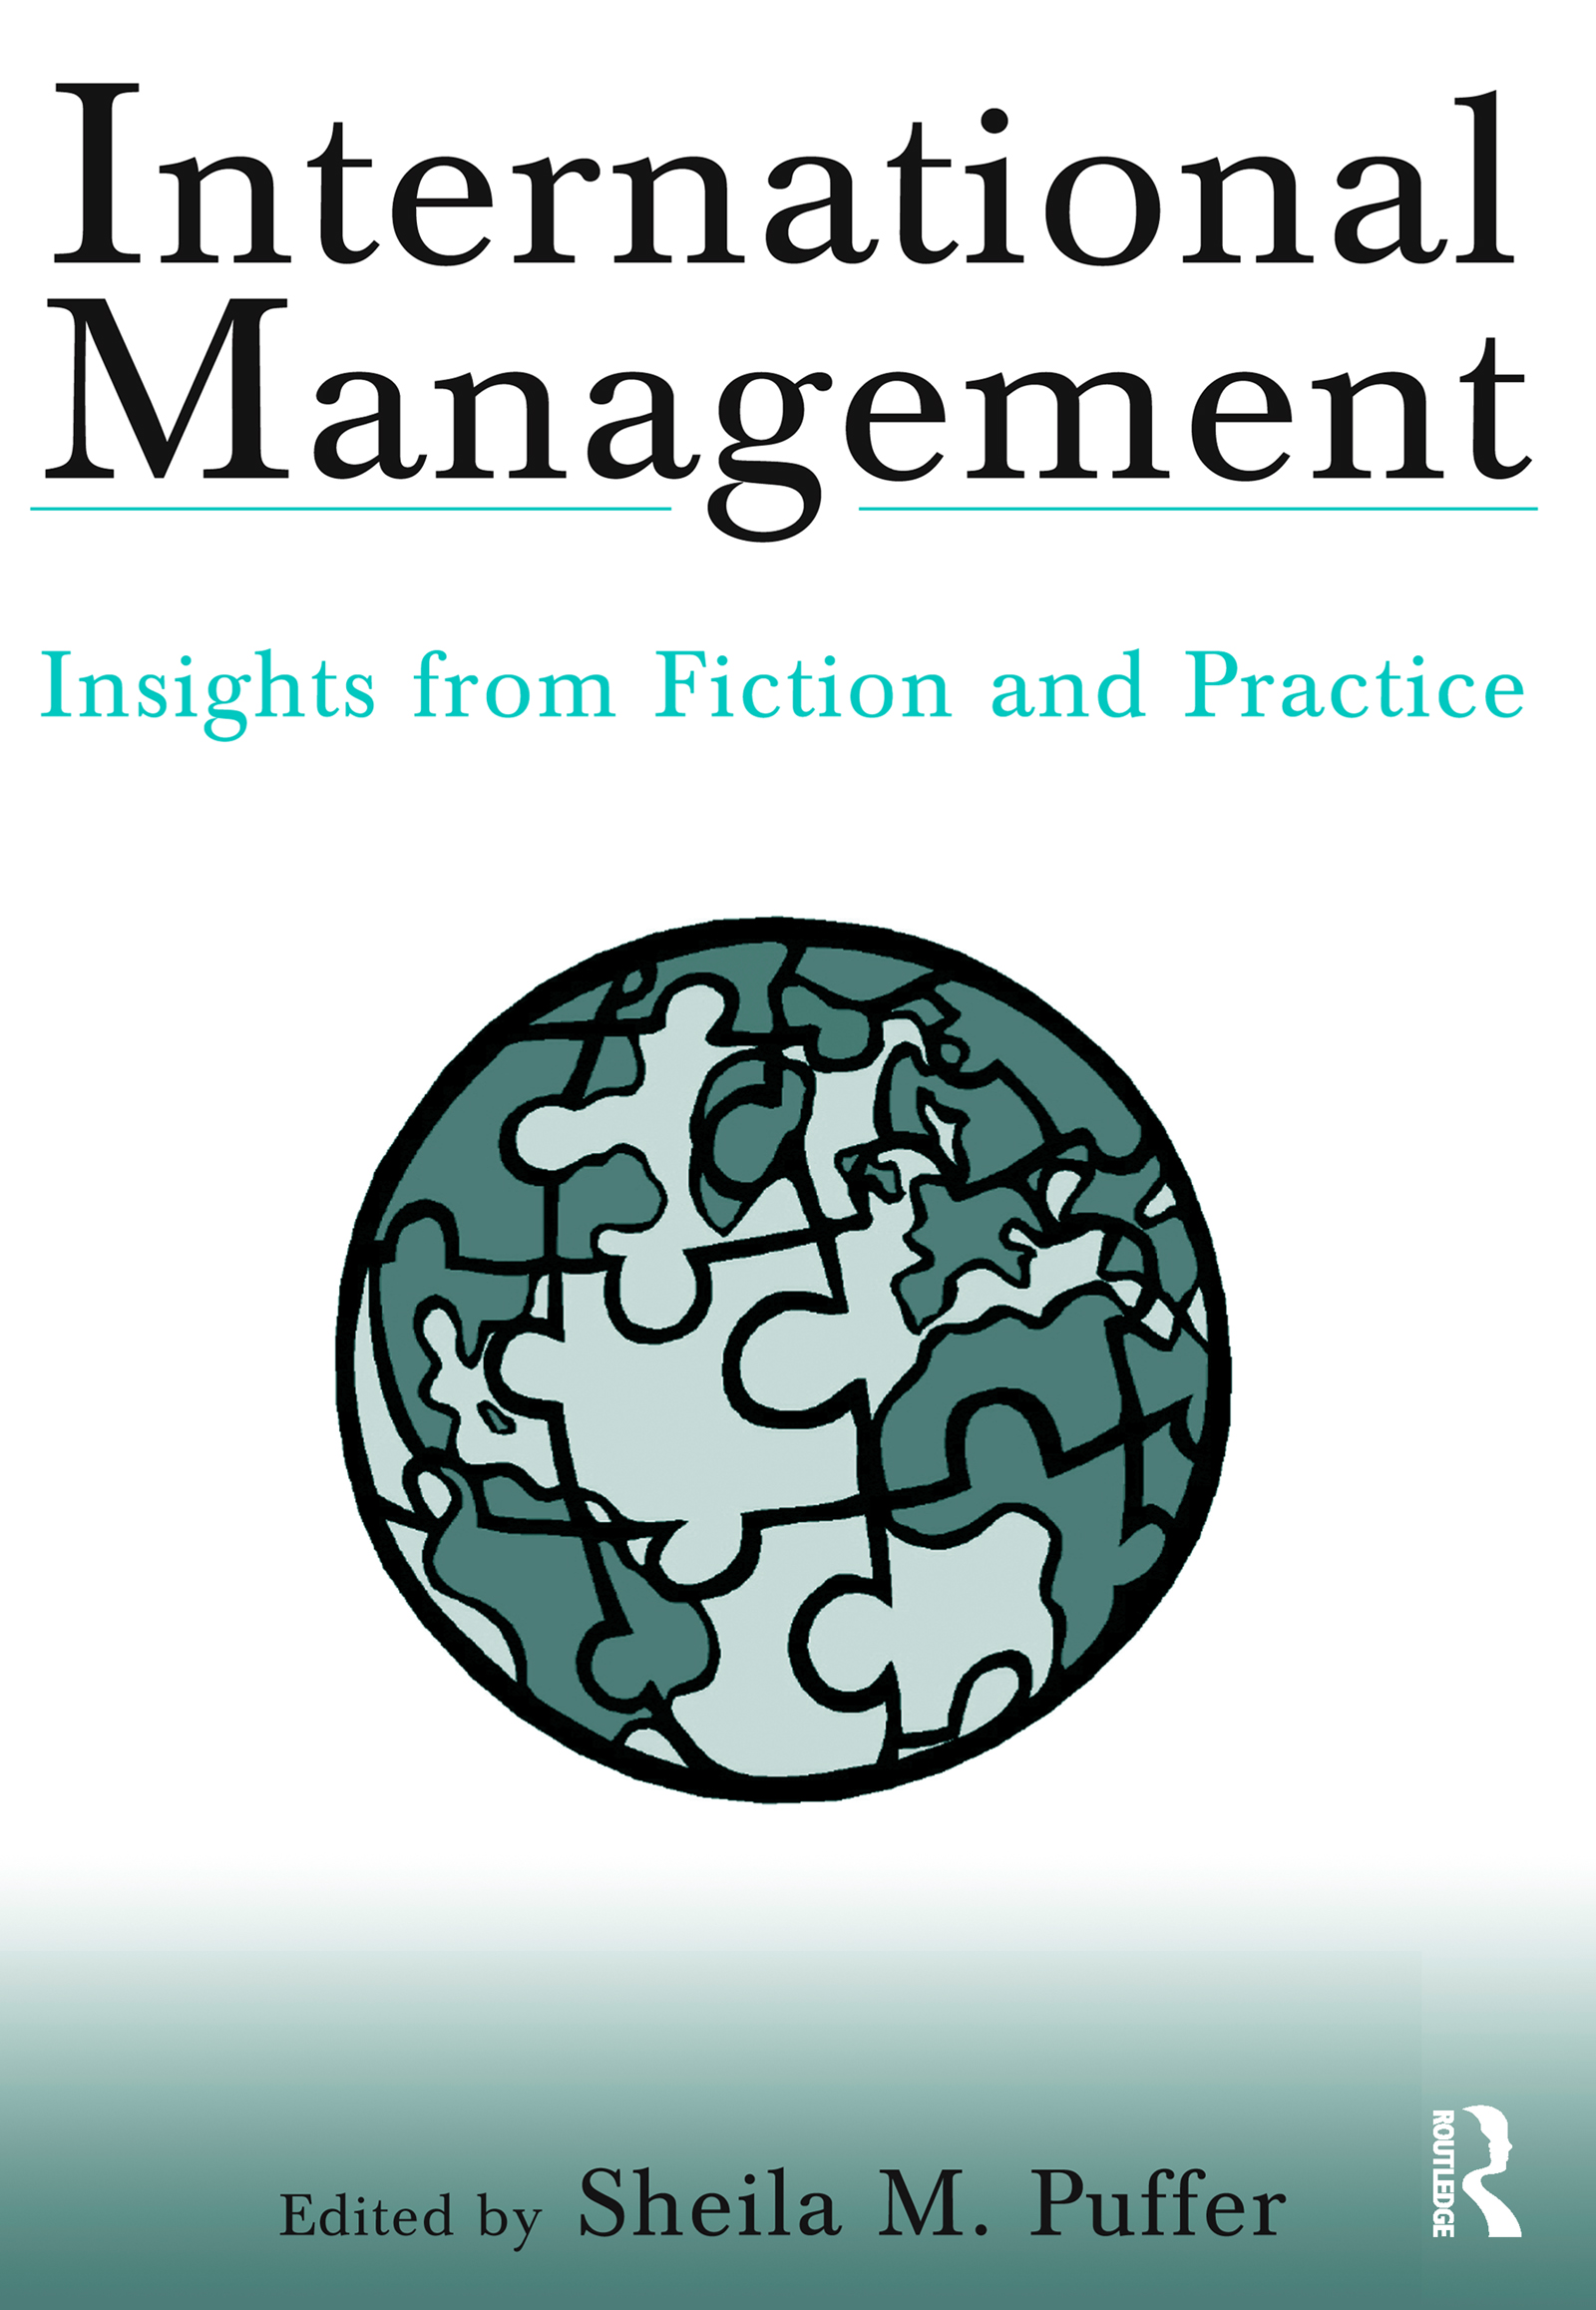 International Management: Insights from Fiction and Practice: Insights from Fiction and Practice, 1st Edition (Paperback) book cover